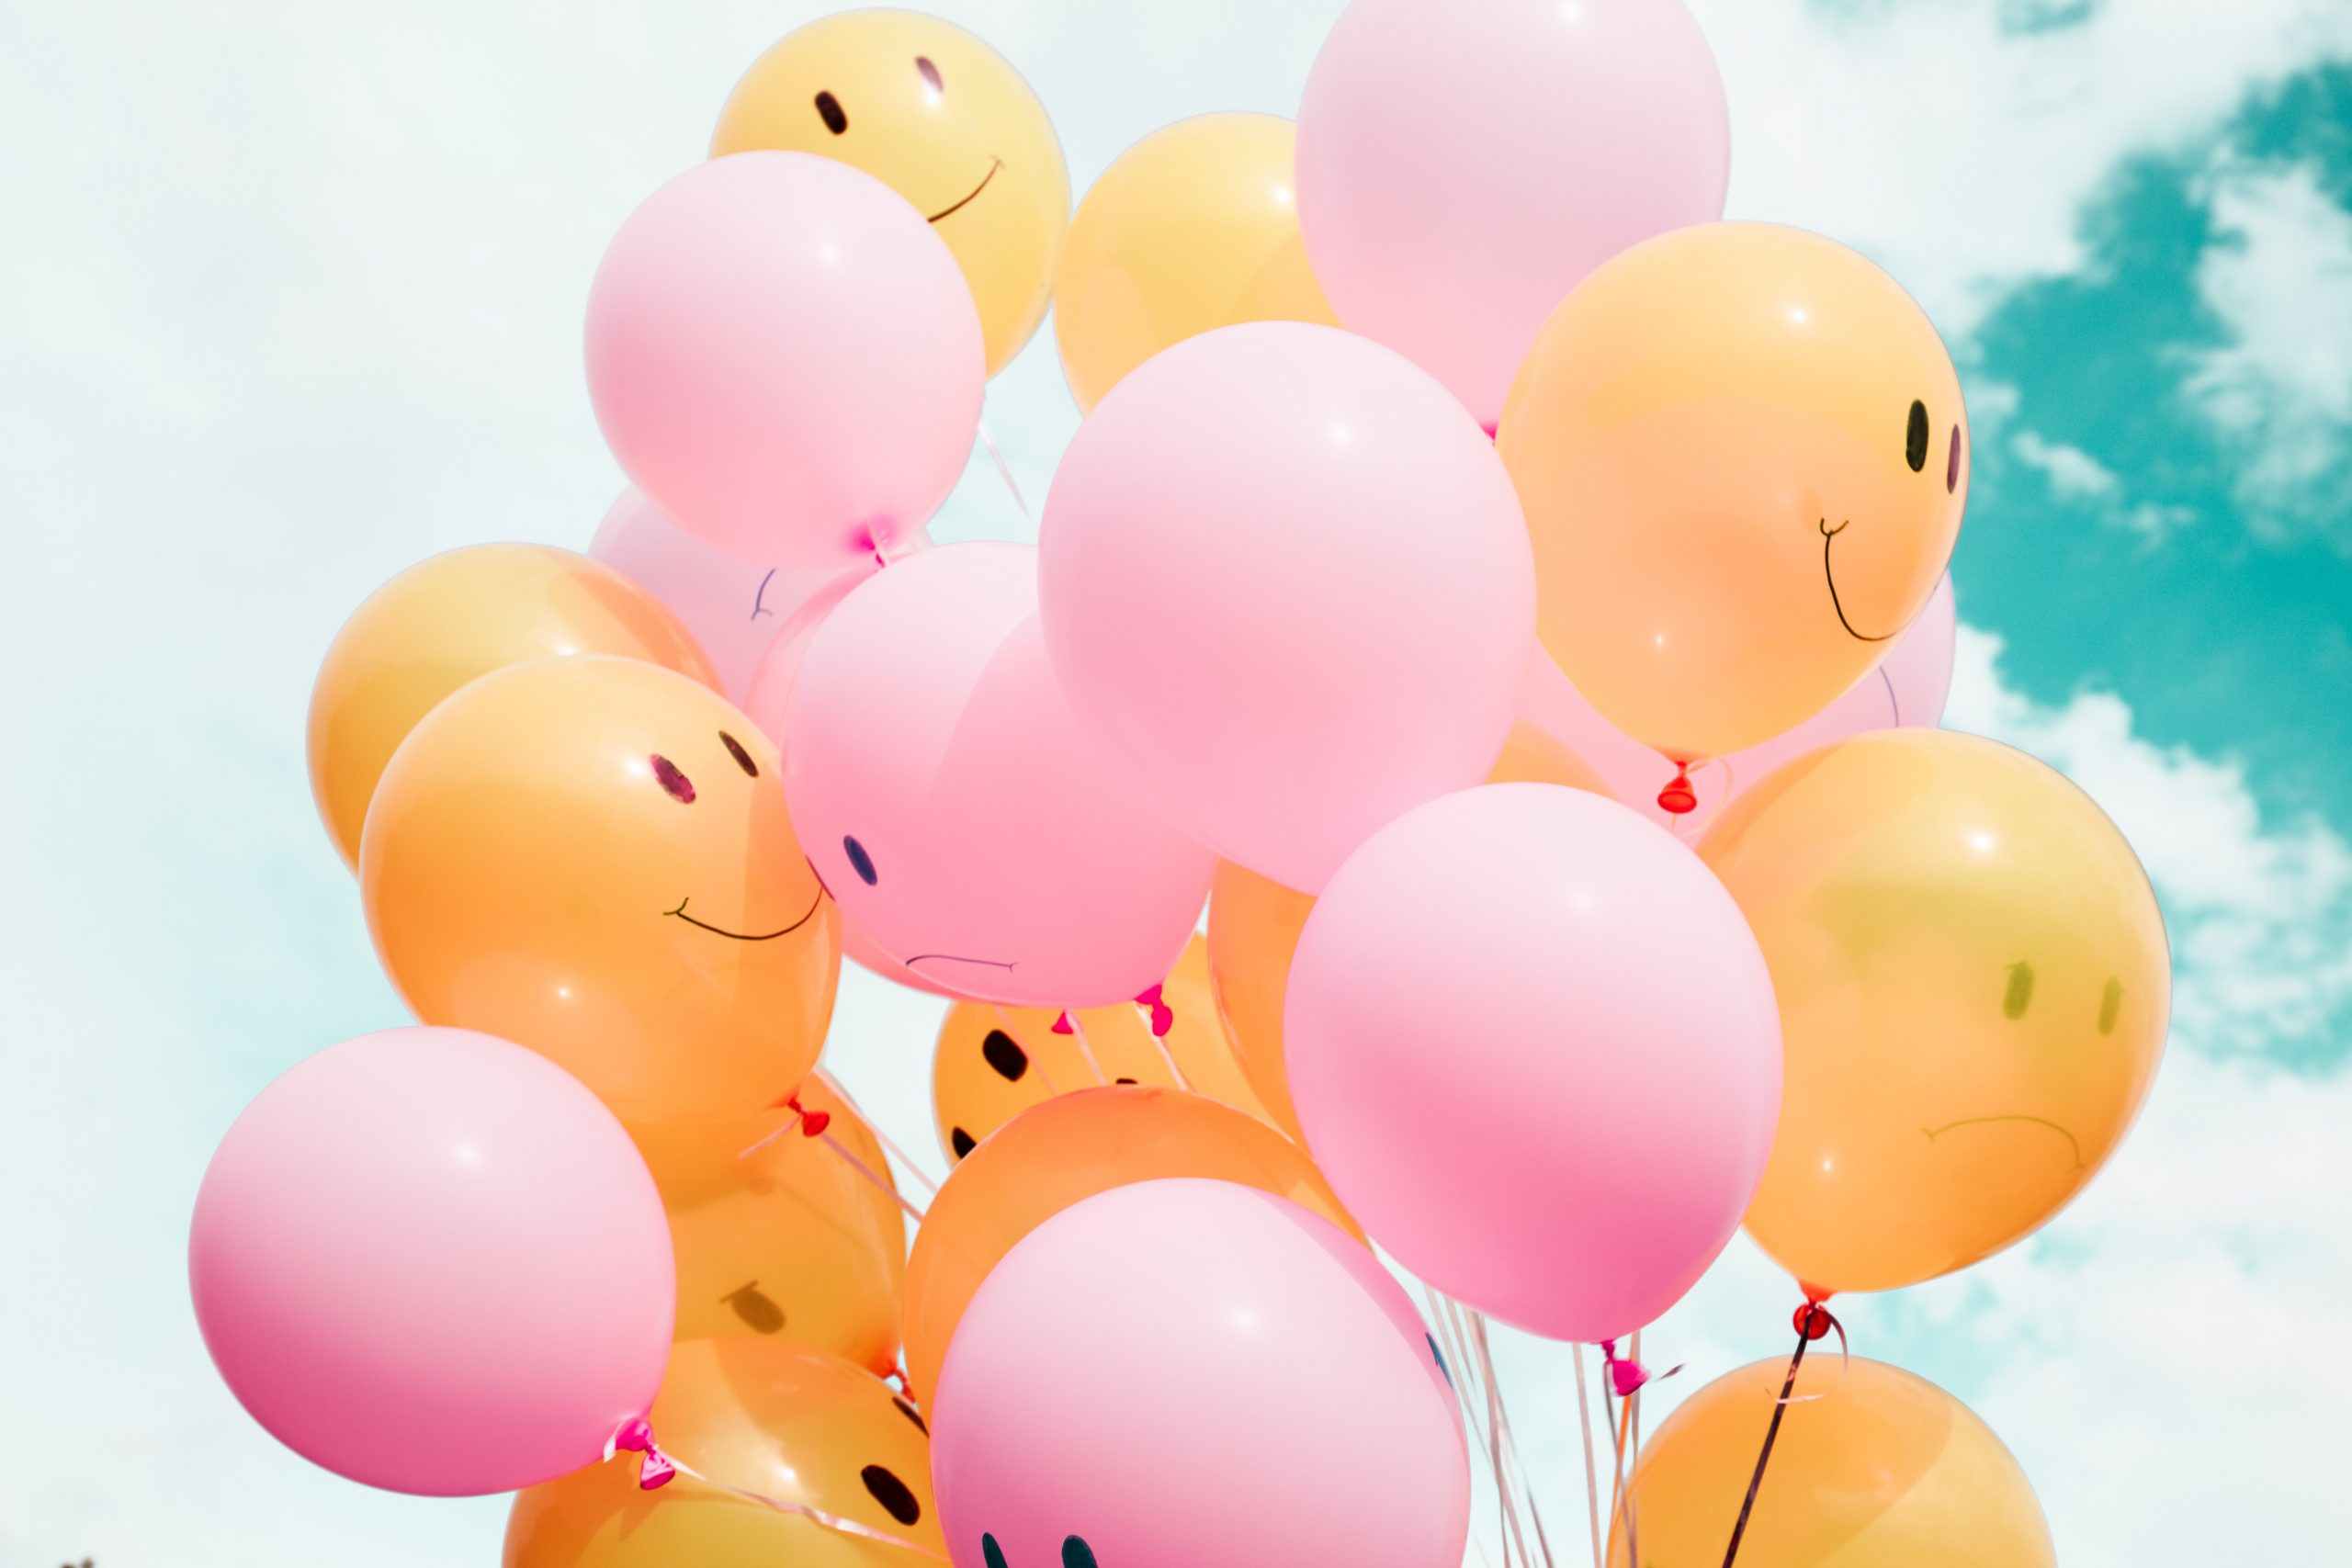 Pink and yellow balloons floating in the sky